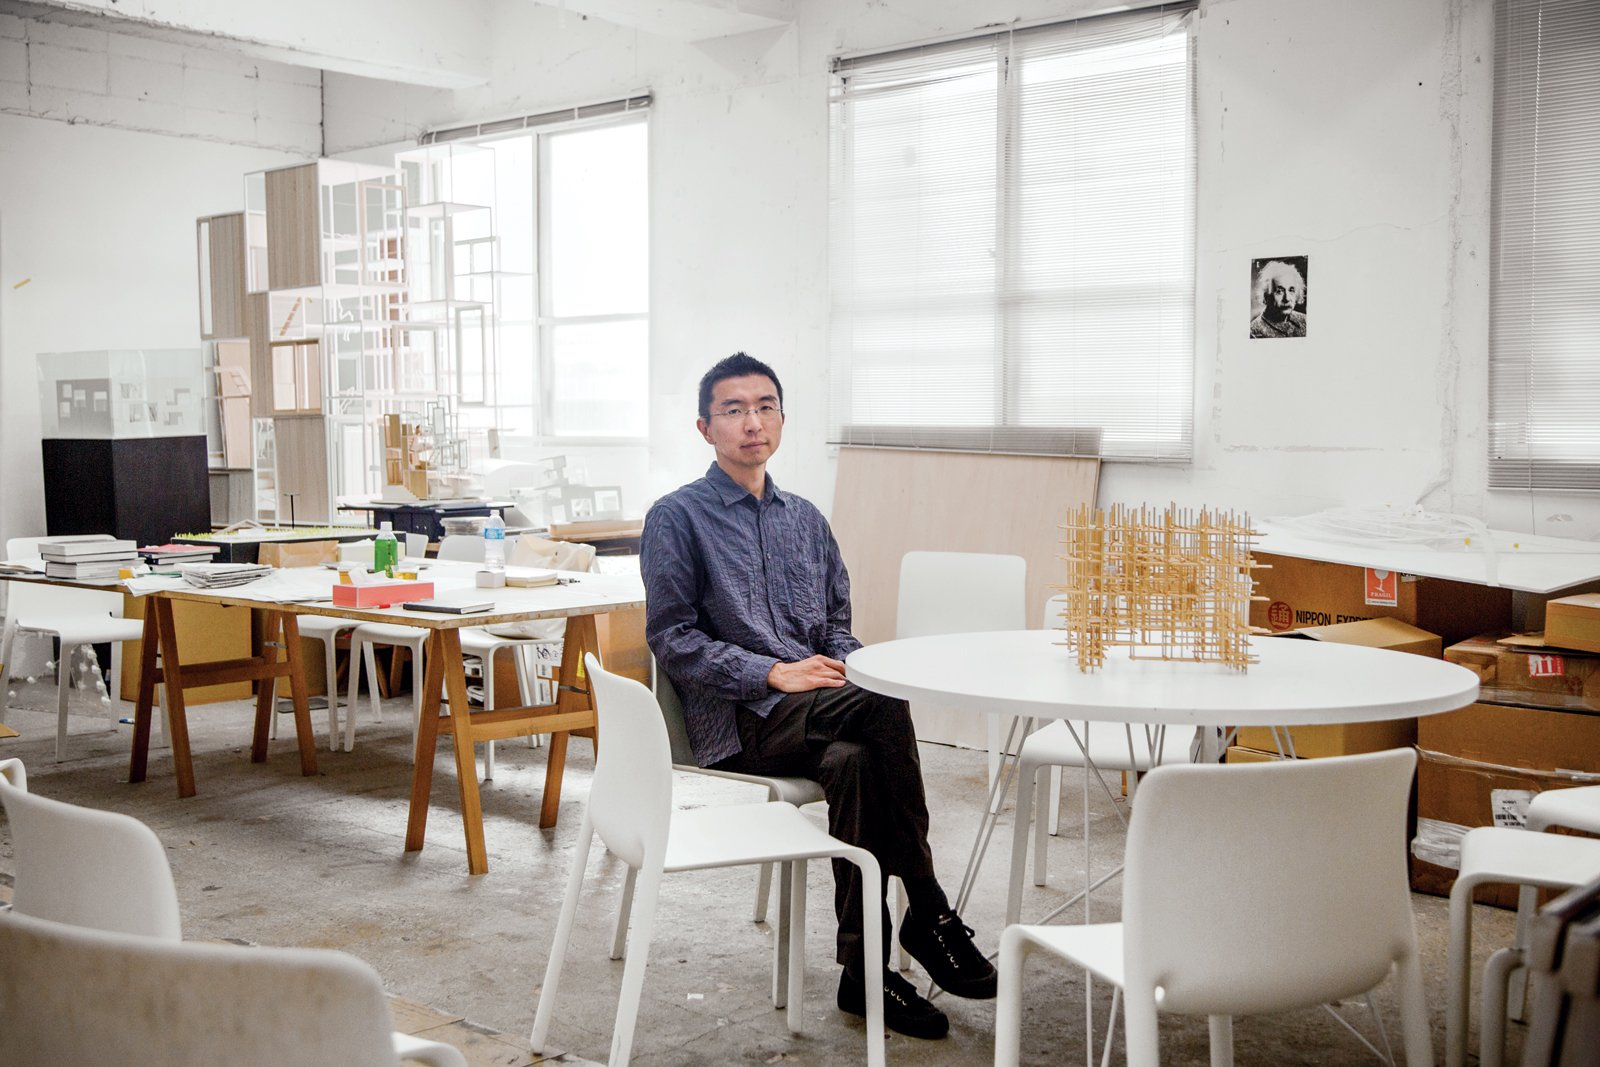 Sou Fujimoto works in a former factory in Tokyo. Since many of his ideas start out as 3-D concepts, hand-built models are one of the fastest ways for him to visualize and modify his ideas. Photo by: Jeremie Souteyrat  Photo 1 of 6 in Architect We Love: Sou Fujimoto